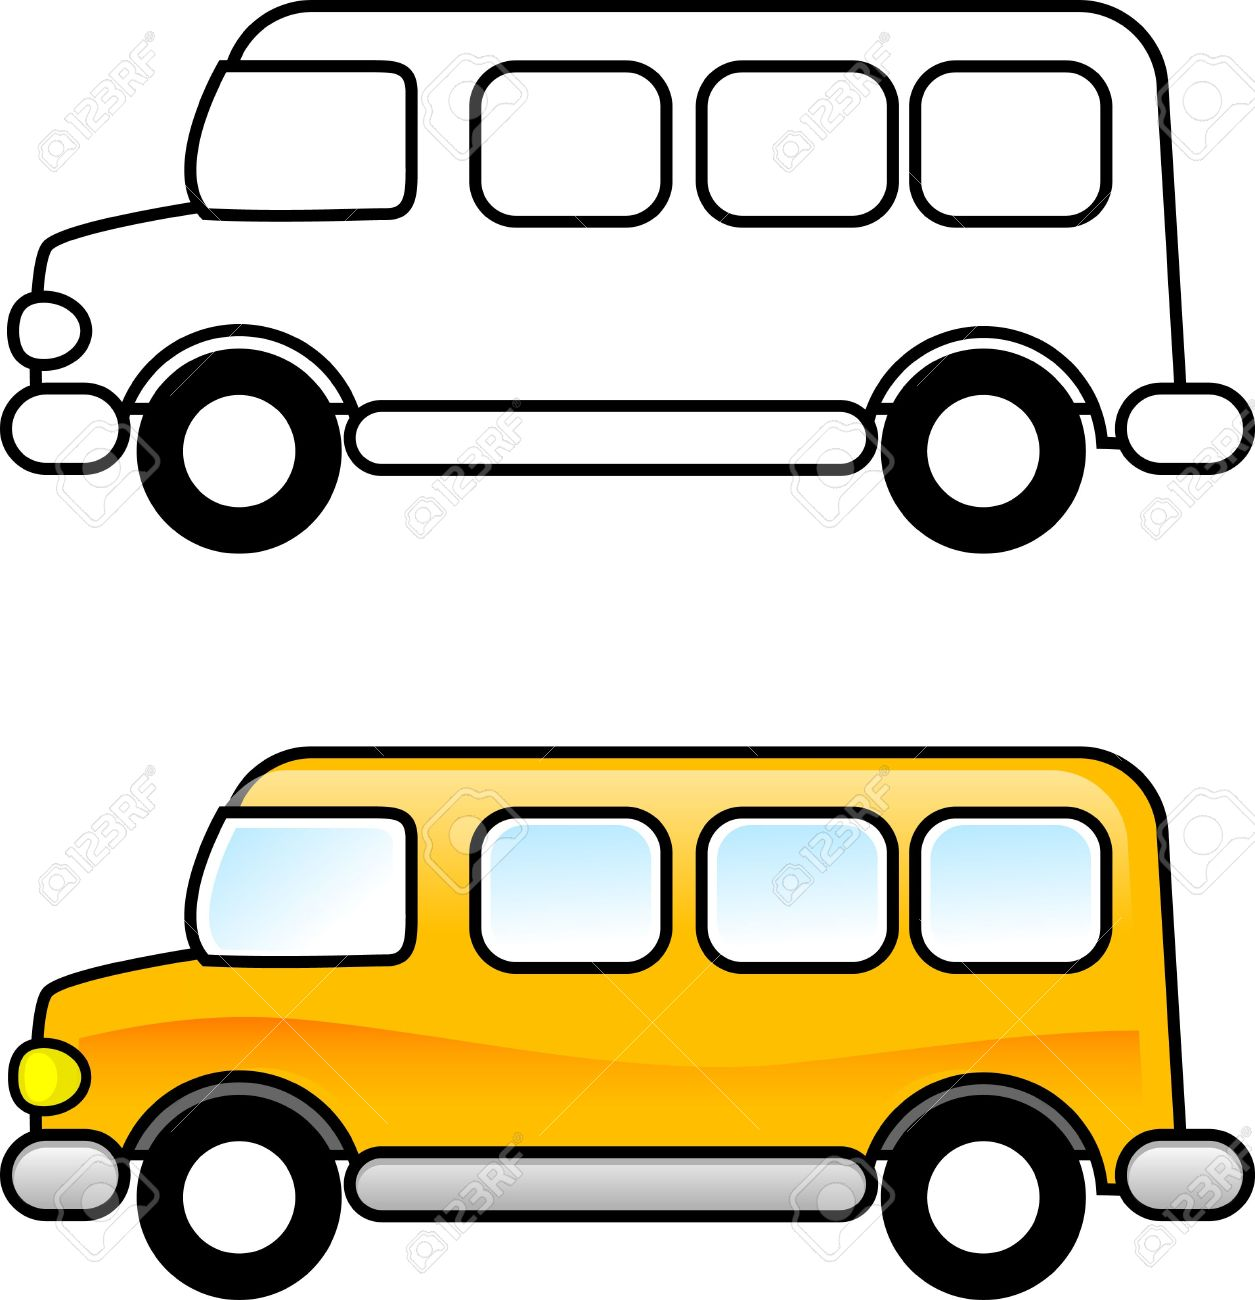 photo about Bus Printable named Higher education Bus - Printable coloring webpage for youngsters or your self can..